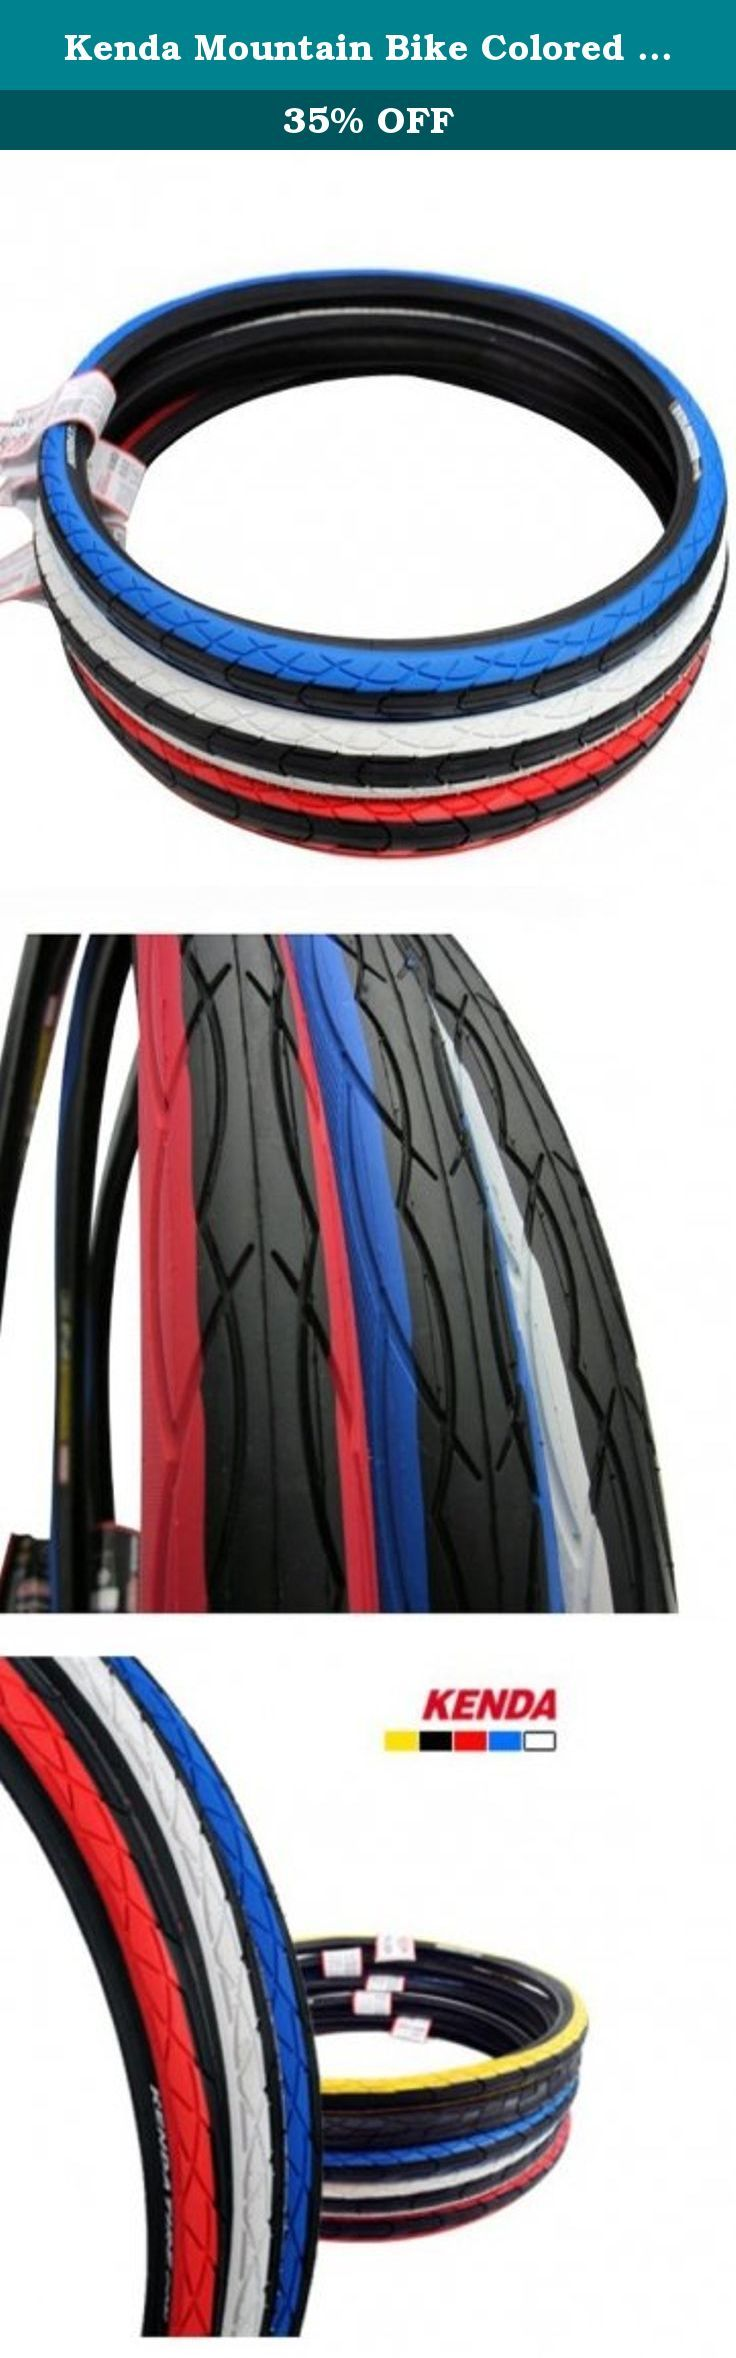 Kenda Mountain Bike Colored Tire 26 x 1.5 Inch Bald Tyre. Specifications: Product:mountain bicycle tyre Material:rubber Weight:560g Model:K1029 Size:26x1.5inch (perimeter x width ) TPI:60 PSI:40-65 Color:red-blue-white Suit for:mountain bike Features: The streamline strip pattern design- provides good drainage performance. Fine diamond particle design-increased stability and skid resistance when turning. Low rolling resistance rubber material-providing the rider comfort and saving labor....